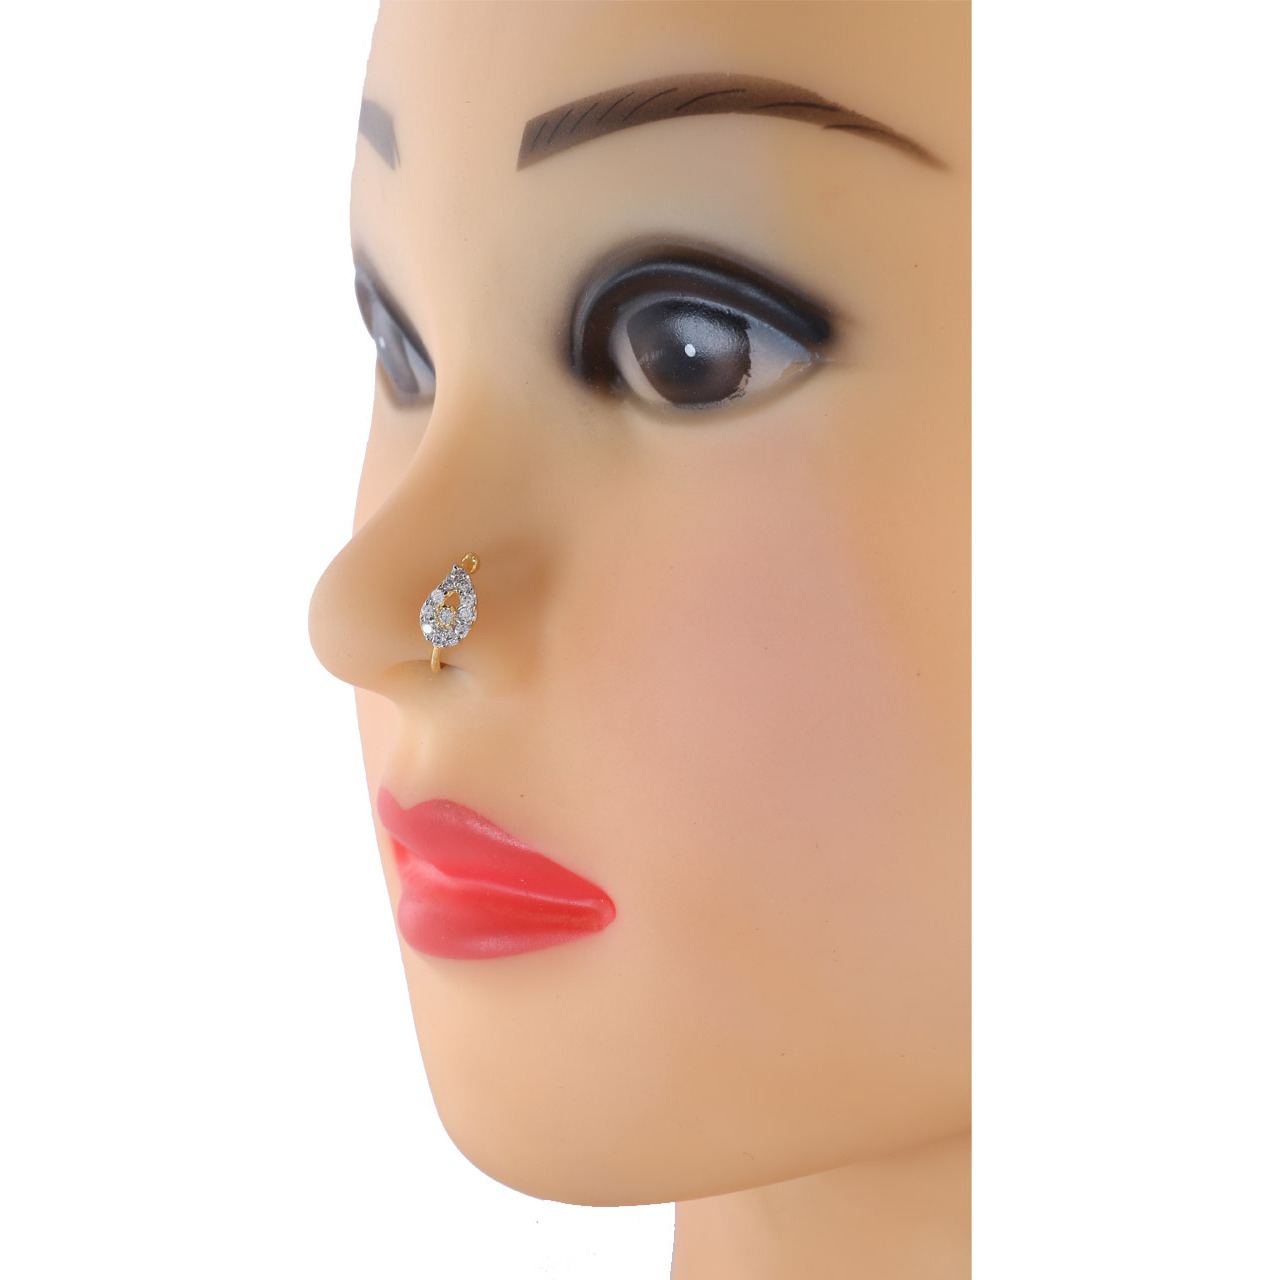 Anuradha Art Presenting Studded American Diamond Stone Classy Designer Saniya Mirza Style Clip-On Nose Ring/Pin For Women/Girls